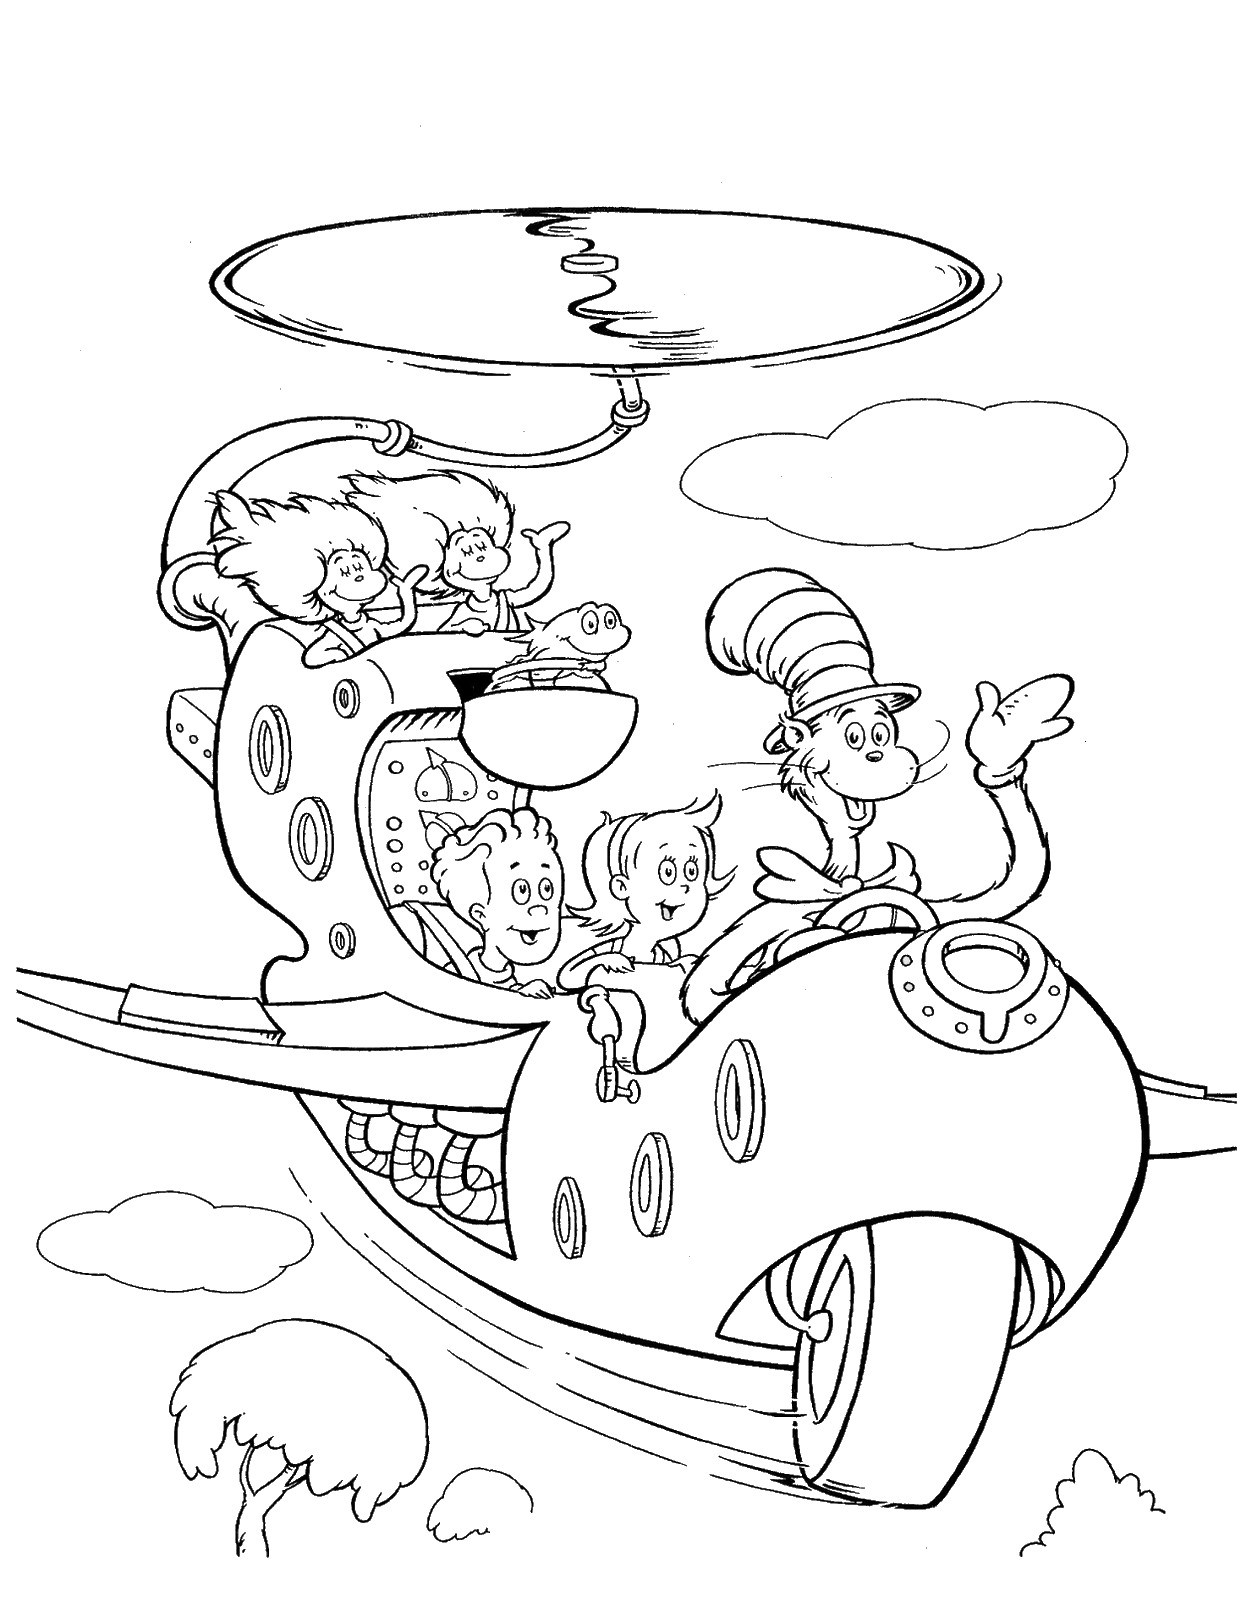 preschool cat in the hat coloring pages | Cat In Hat Drawing at GetDrawings.com | Free for personal ...